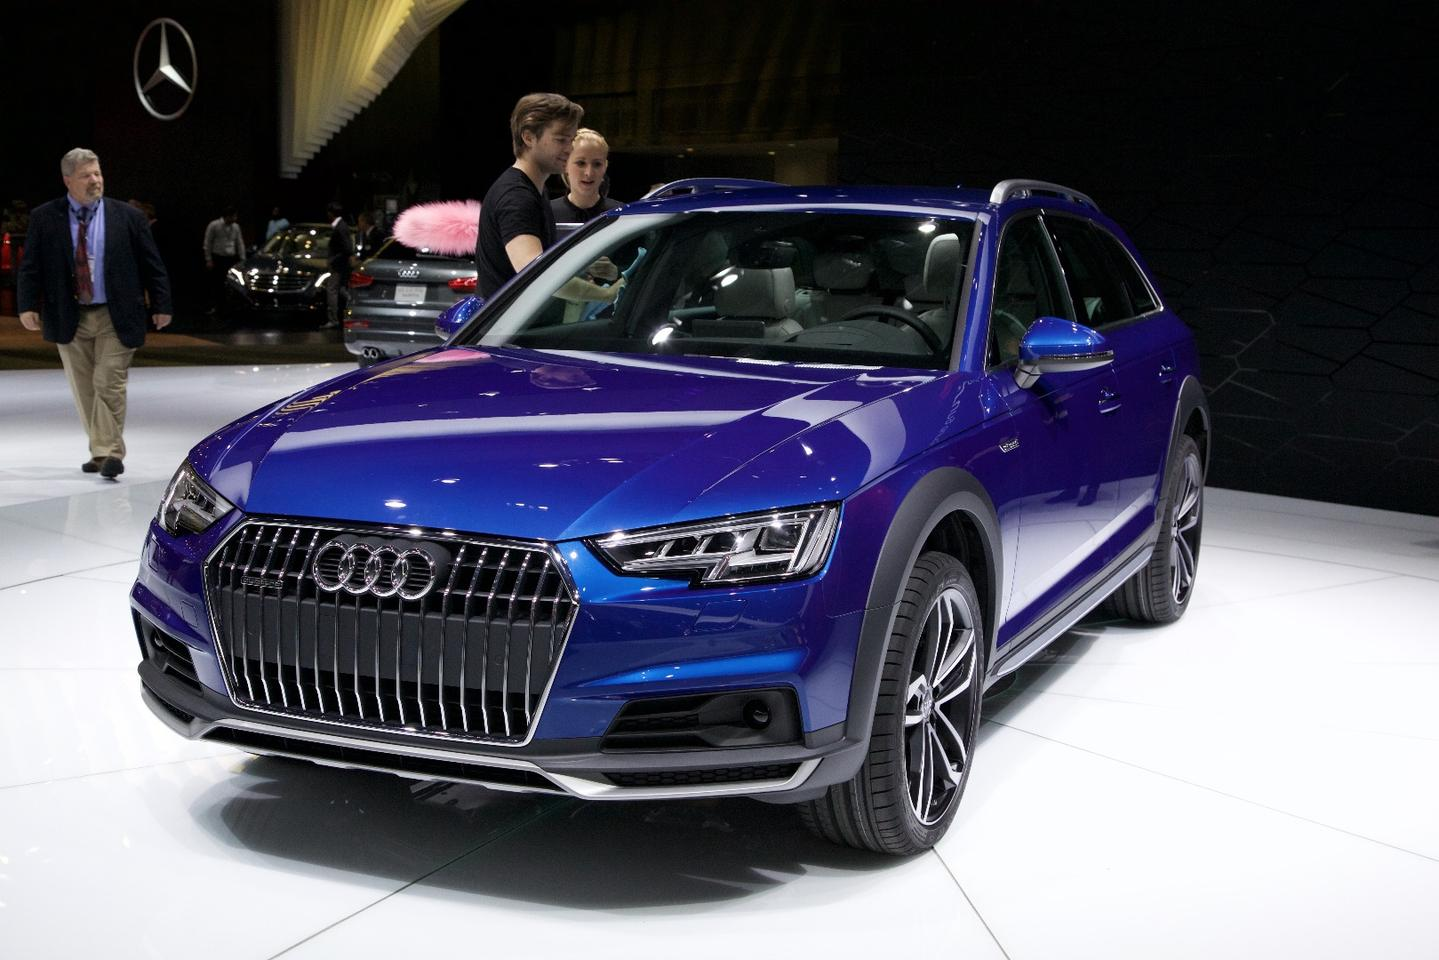 The Audi A4 Allroad made its debut in Detroit, and will take the fight to the ever-growing crowd of SUVs in showrooms